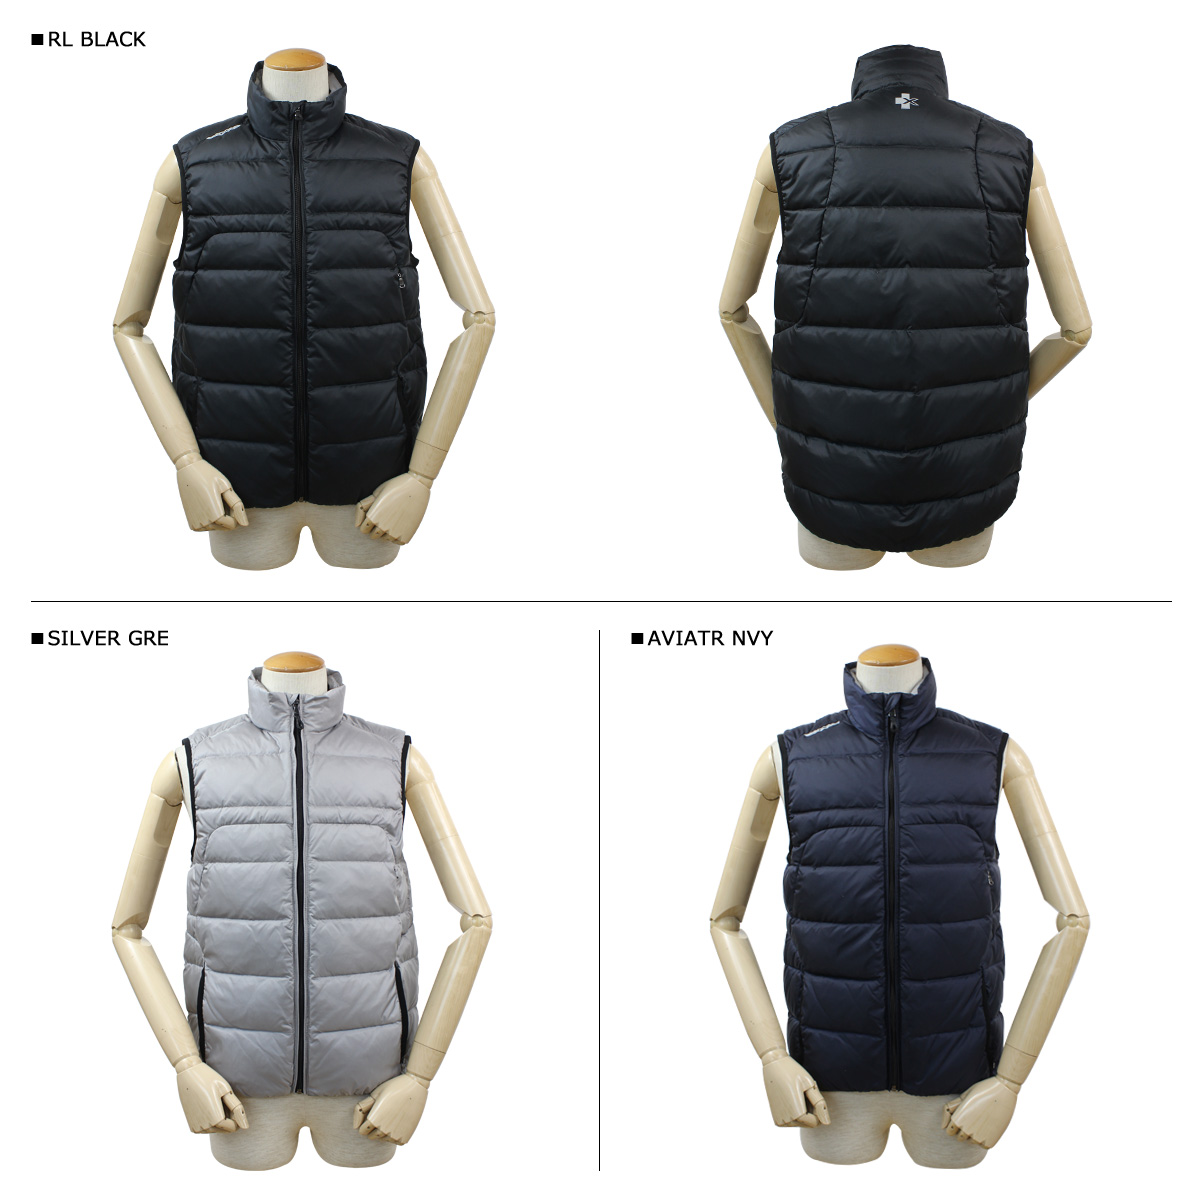 RLX RALPH LAUREN earlier x-ray vest 3 colors men's FIELED VEST